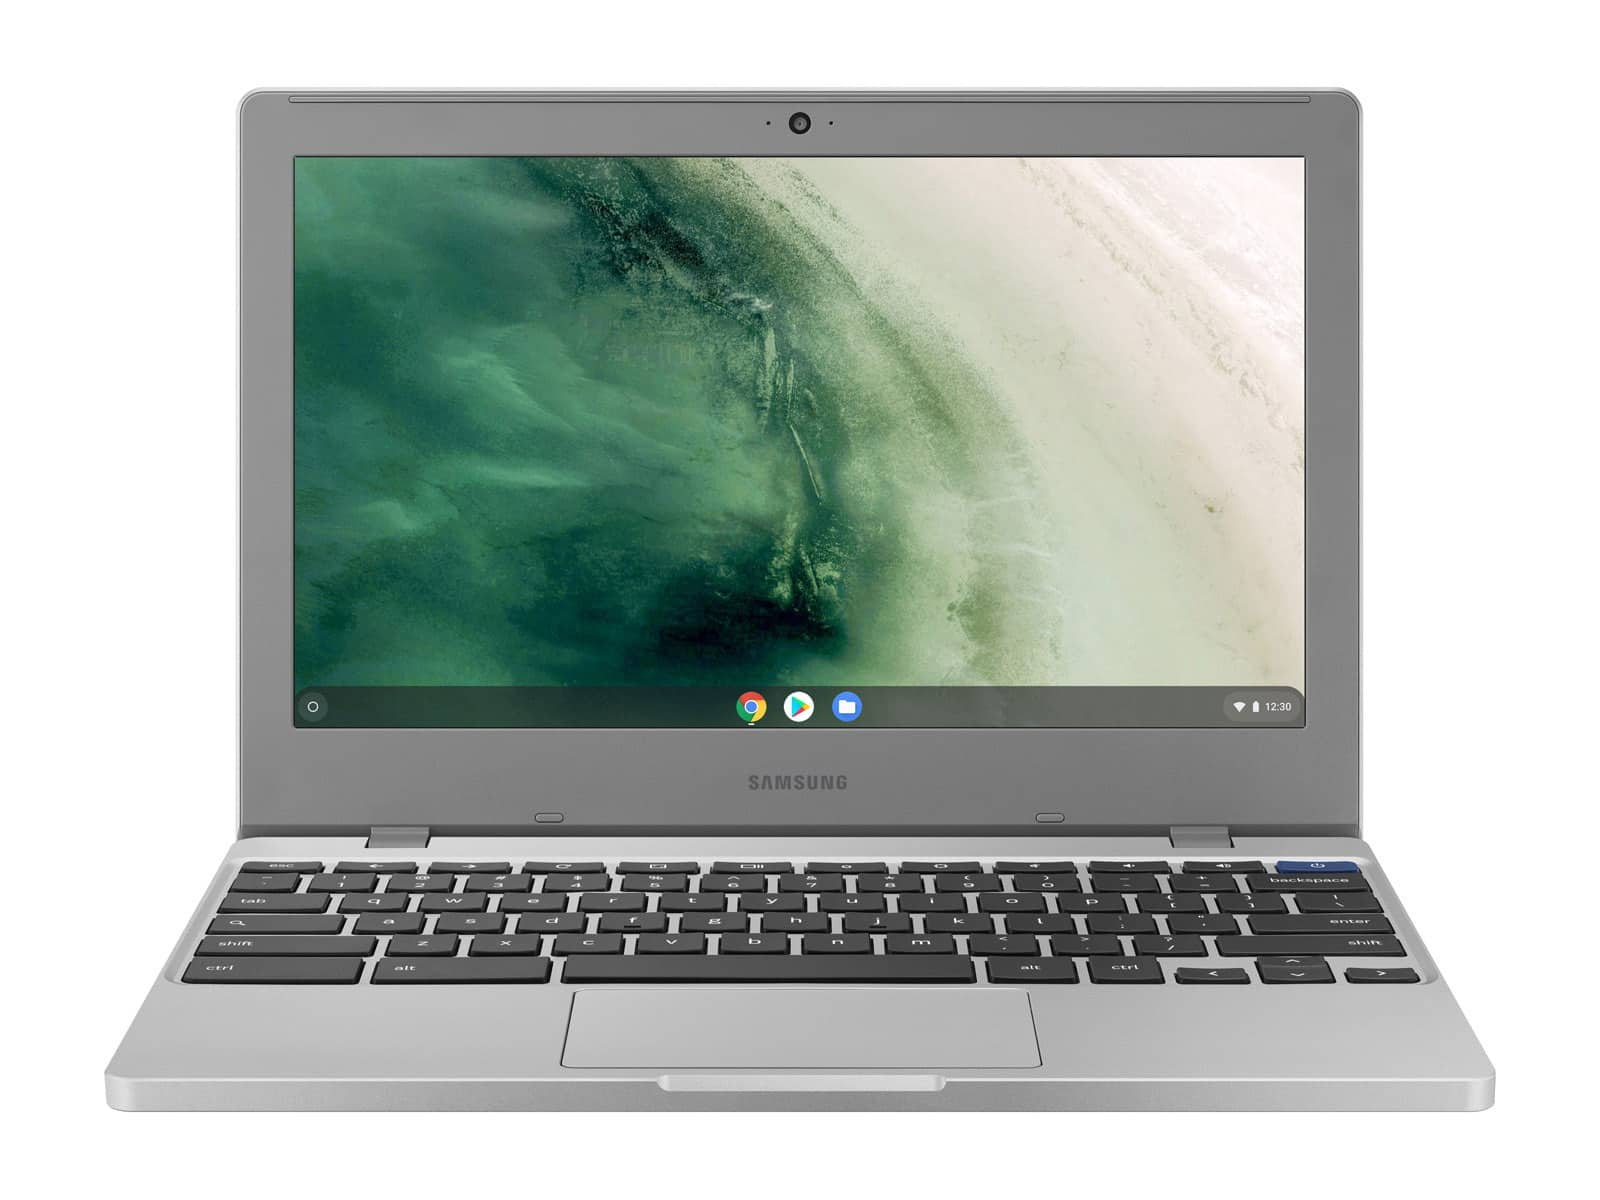 Samsung Chromebook 4 32GB 11.6inch | EPP/EDP $125.99